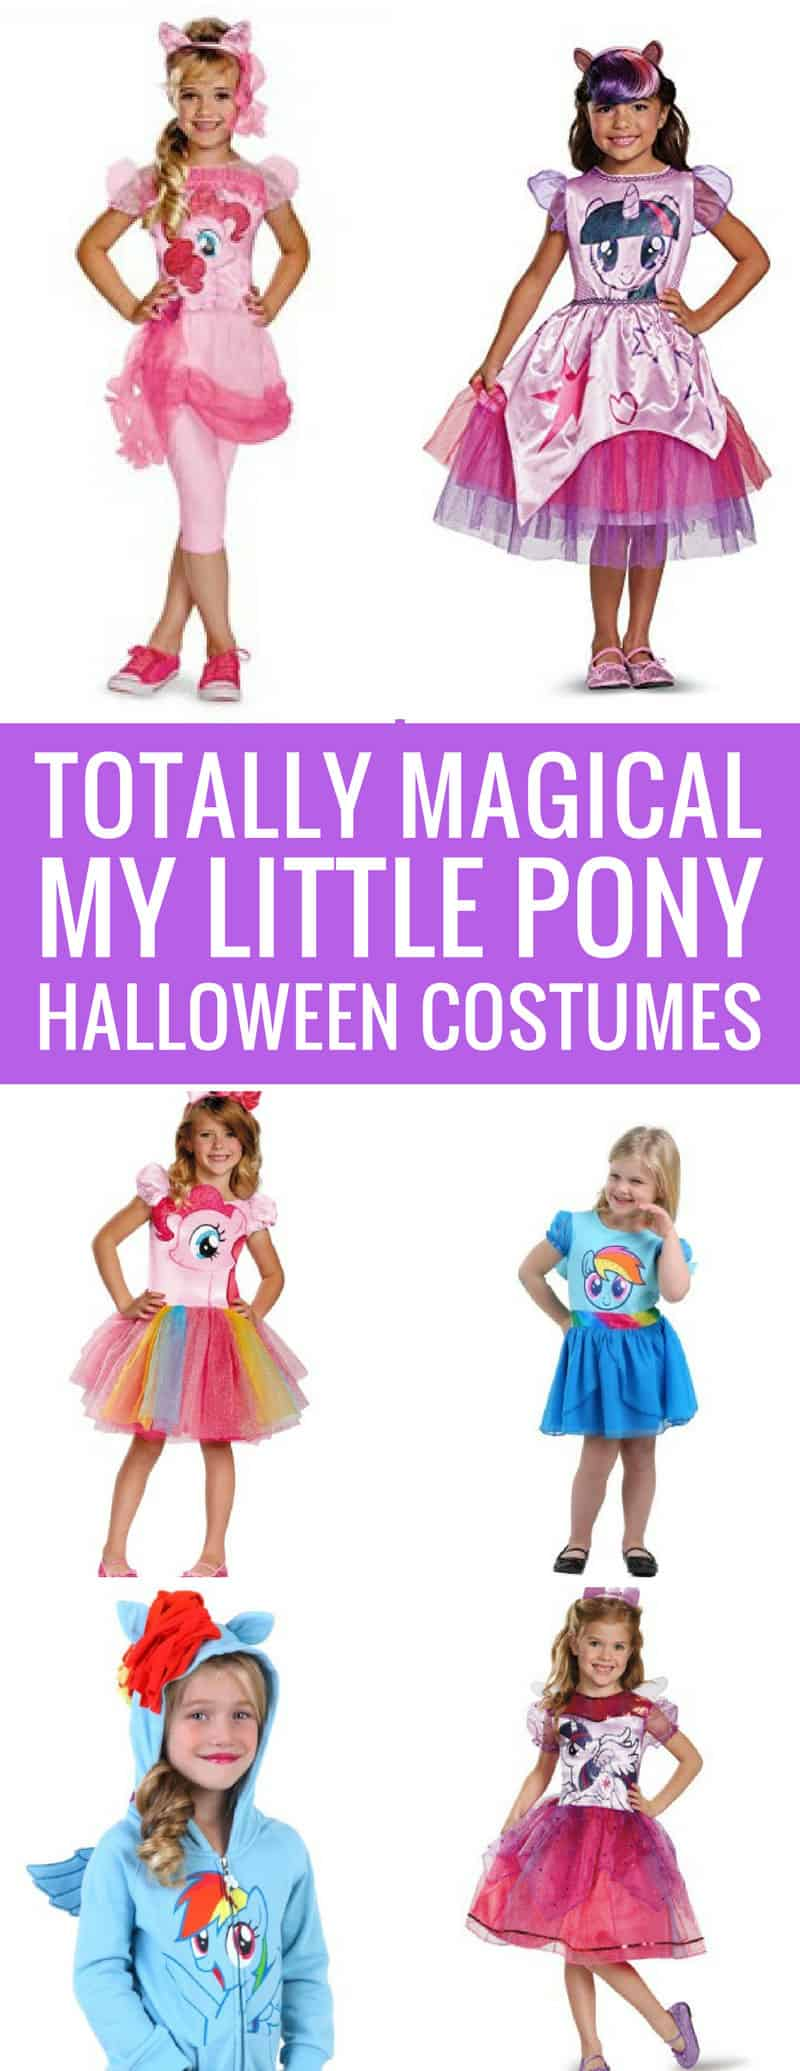 How adorable are these My Little Pony Halloween costume s- my daughter is going to love them for trick or treating! Thanks for sharing!